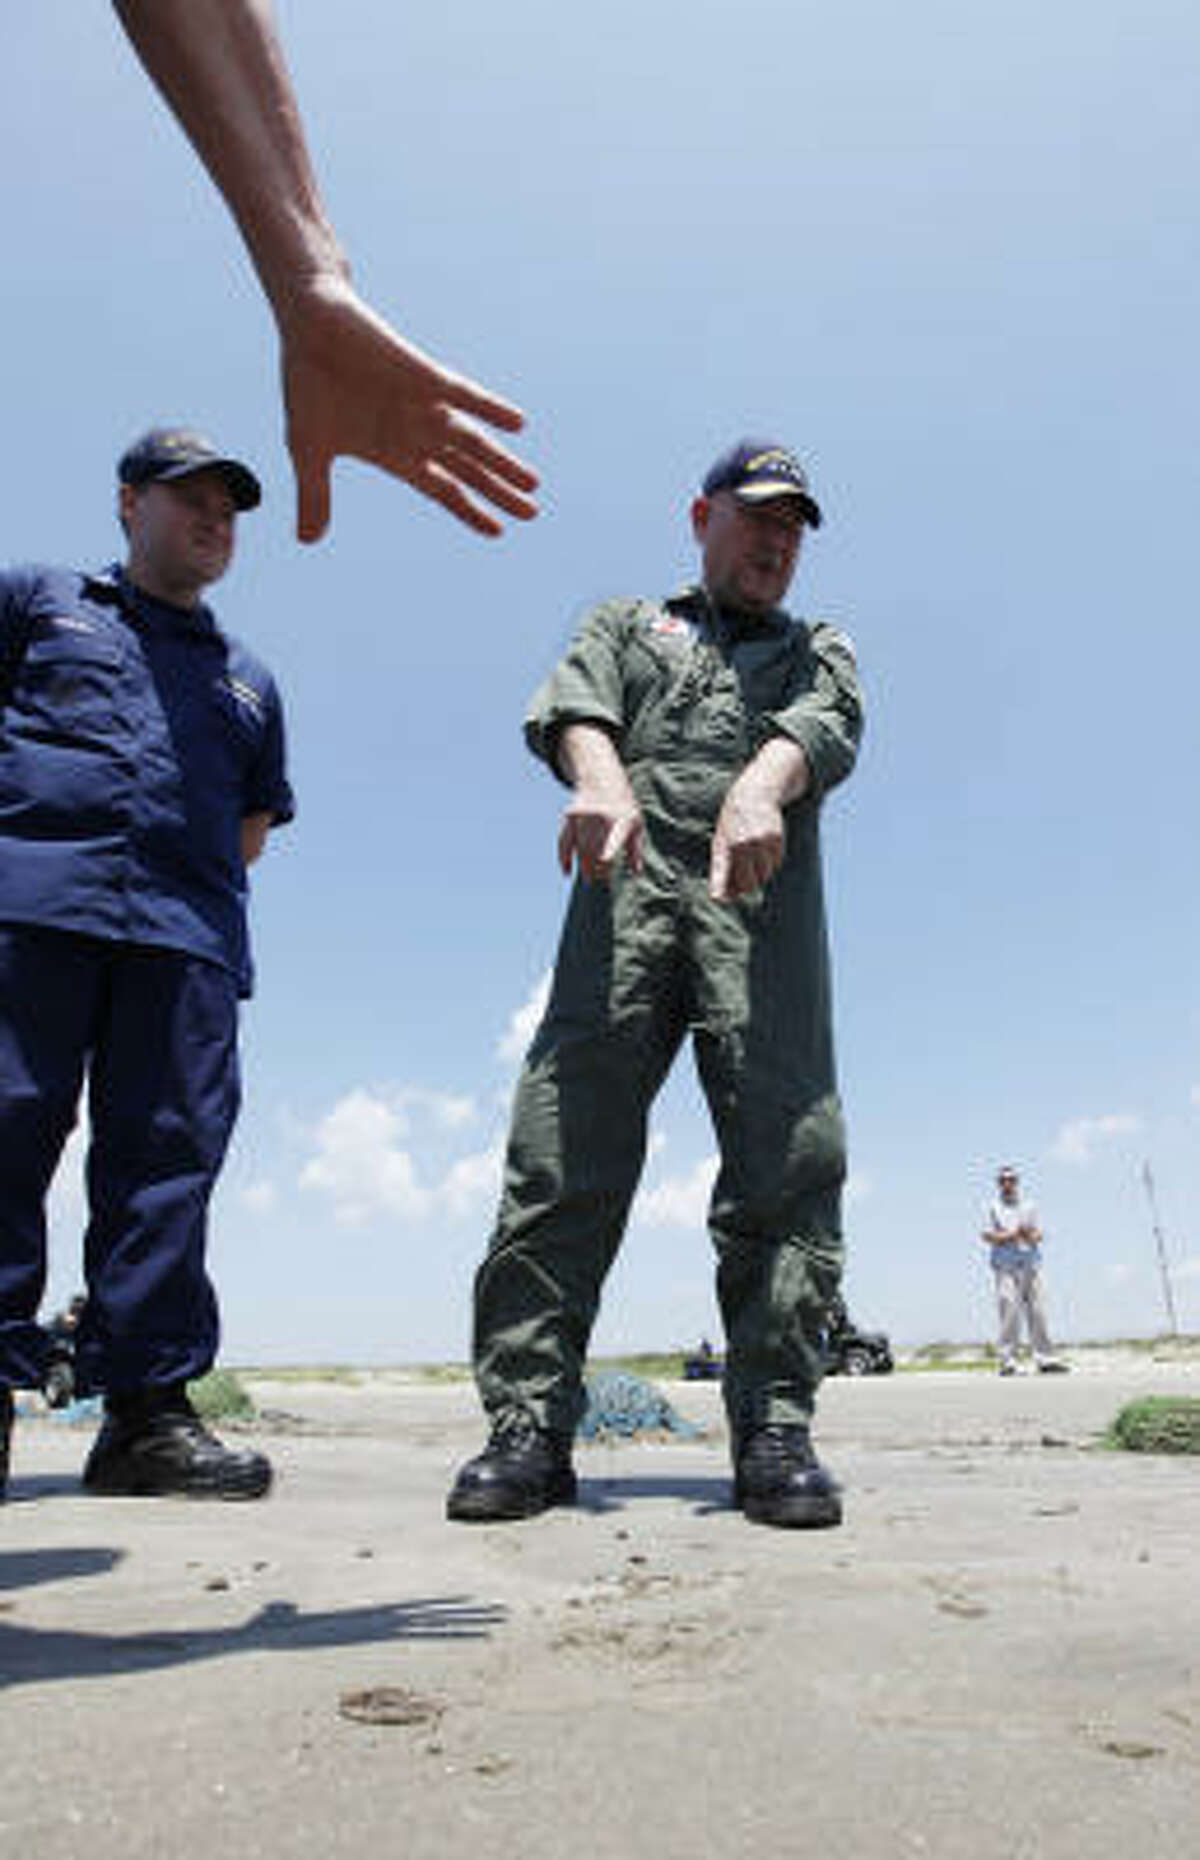 Coast Guard Adm. Thad Allen, National Incident Commander for the Deepwater Horizon disaster response, points at a tar ball as he tours cleanup efforts in Louisiana on Thursday, May 27, 2010.